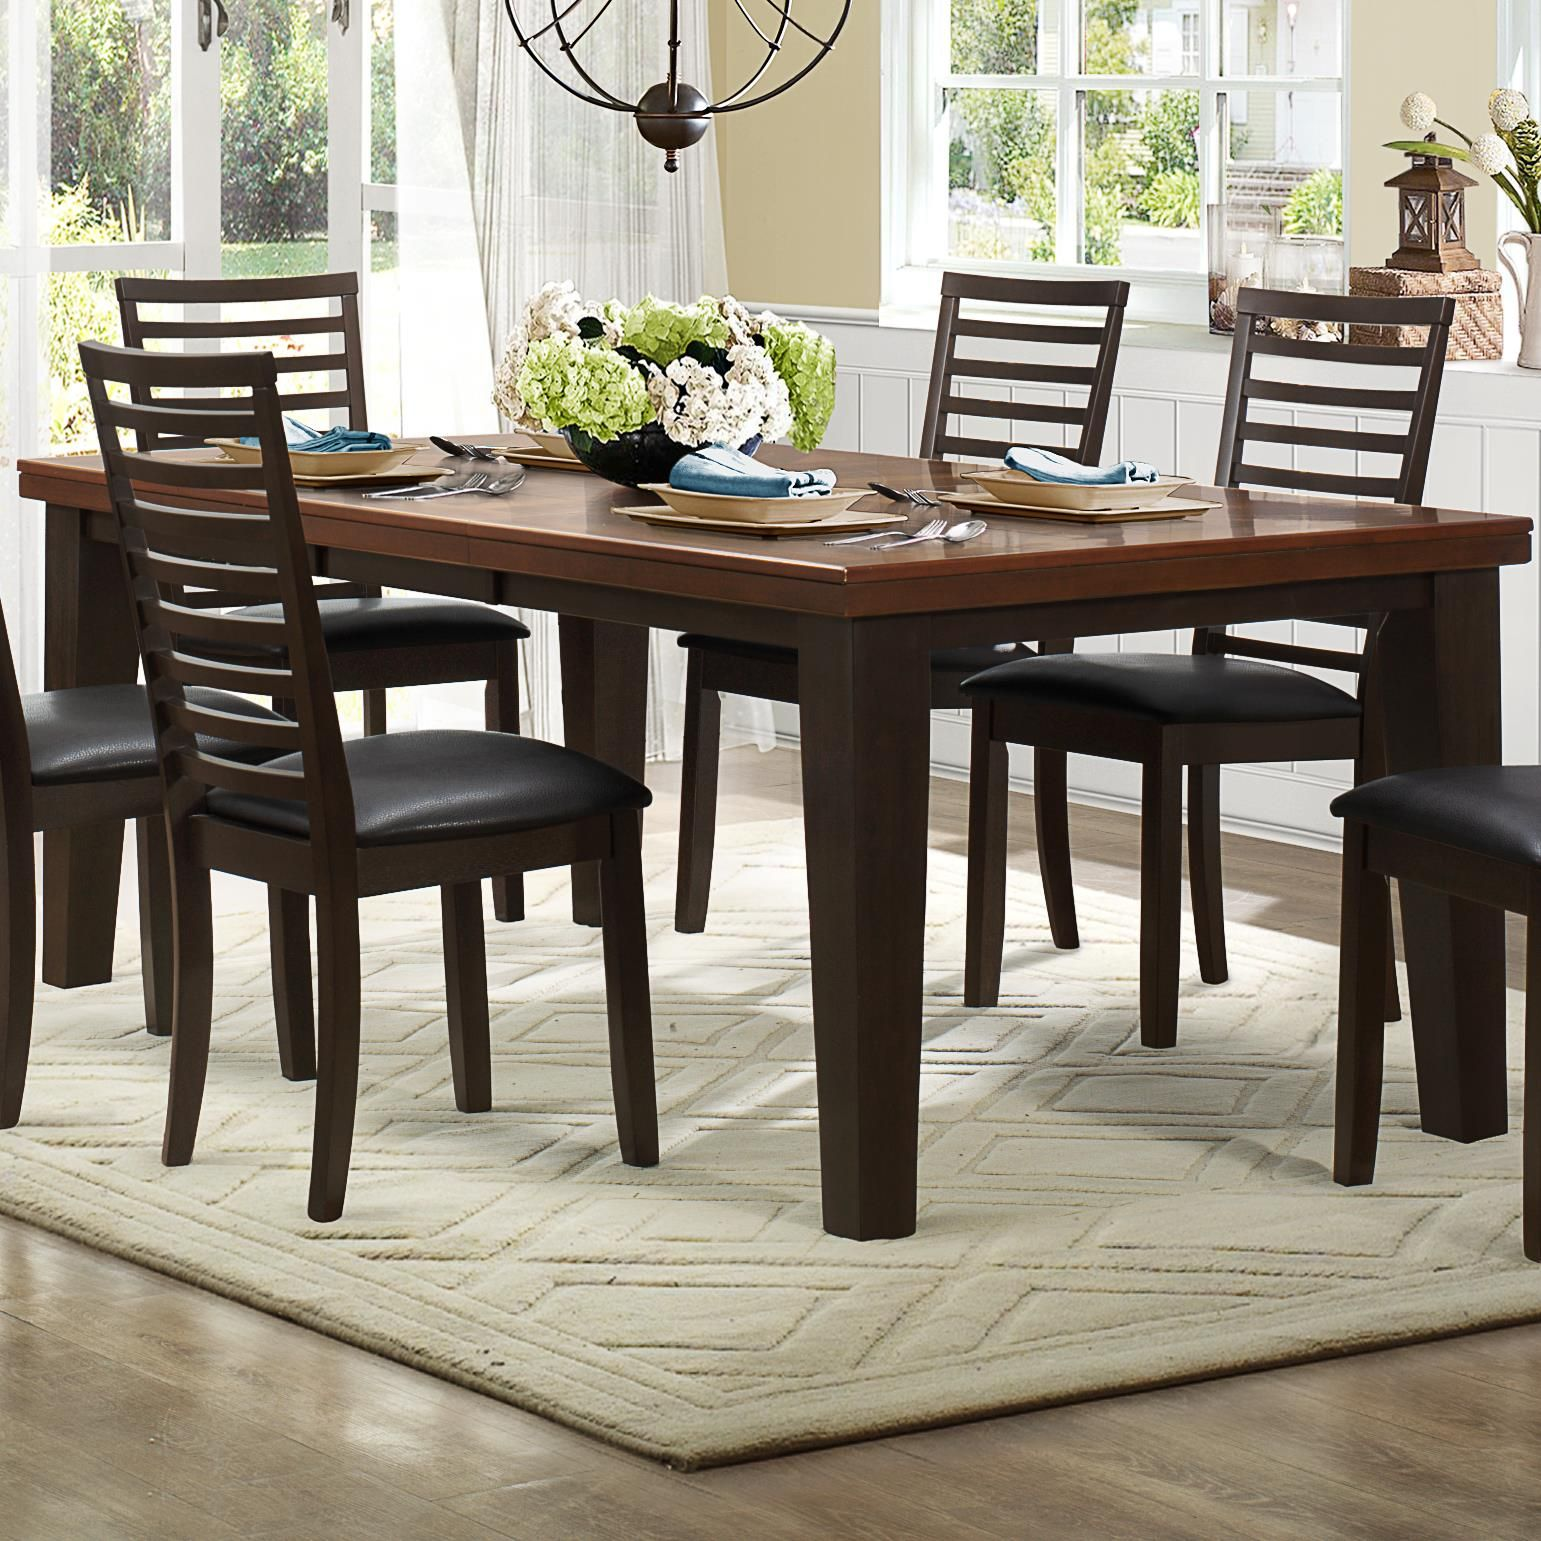 Walsh Rectangle Dining Table With Butterfly Leafhomelegance Delectable Rectangle Dining Room Tables Decorating Inspiration